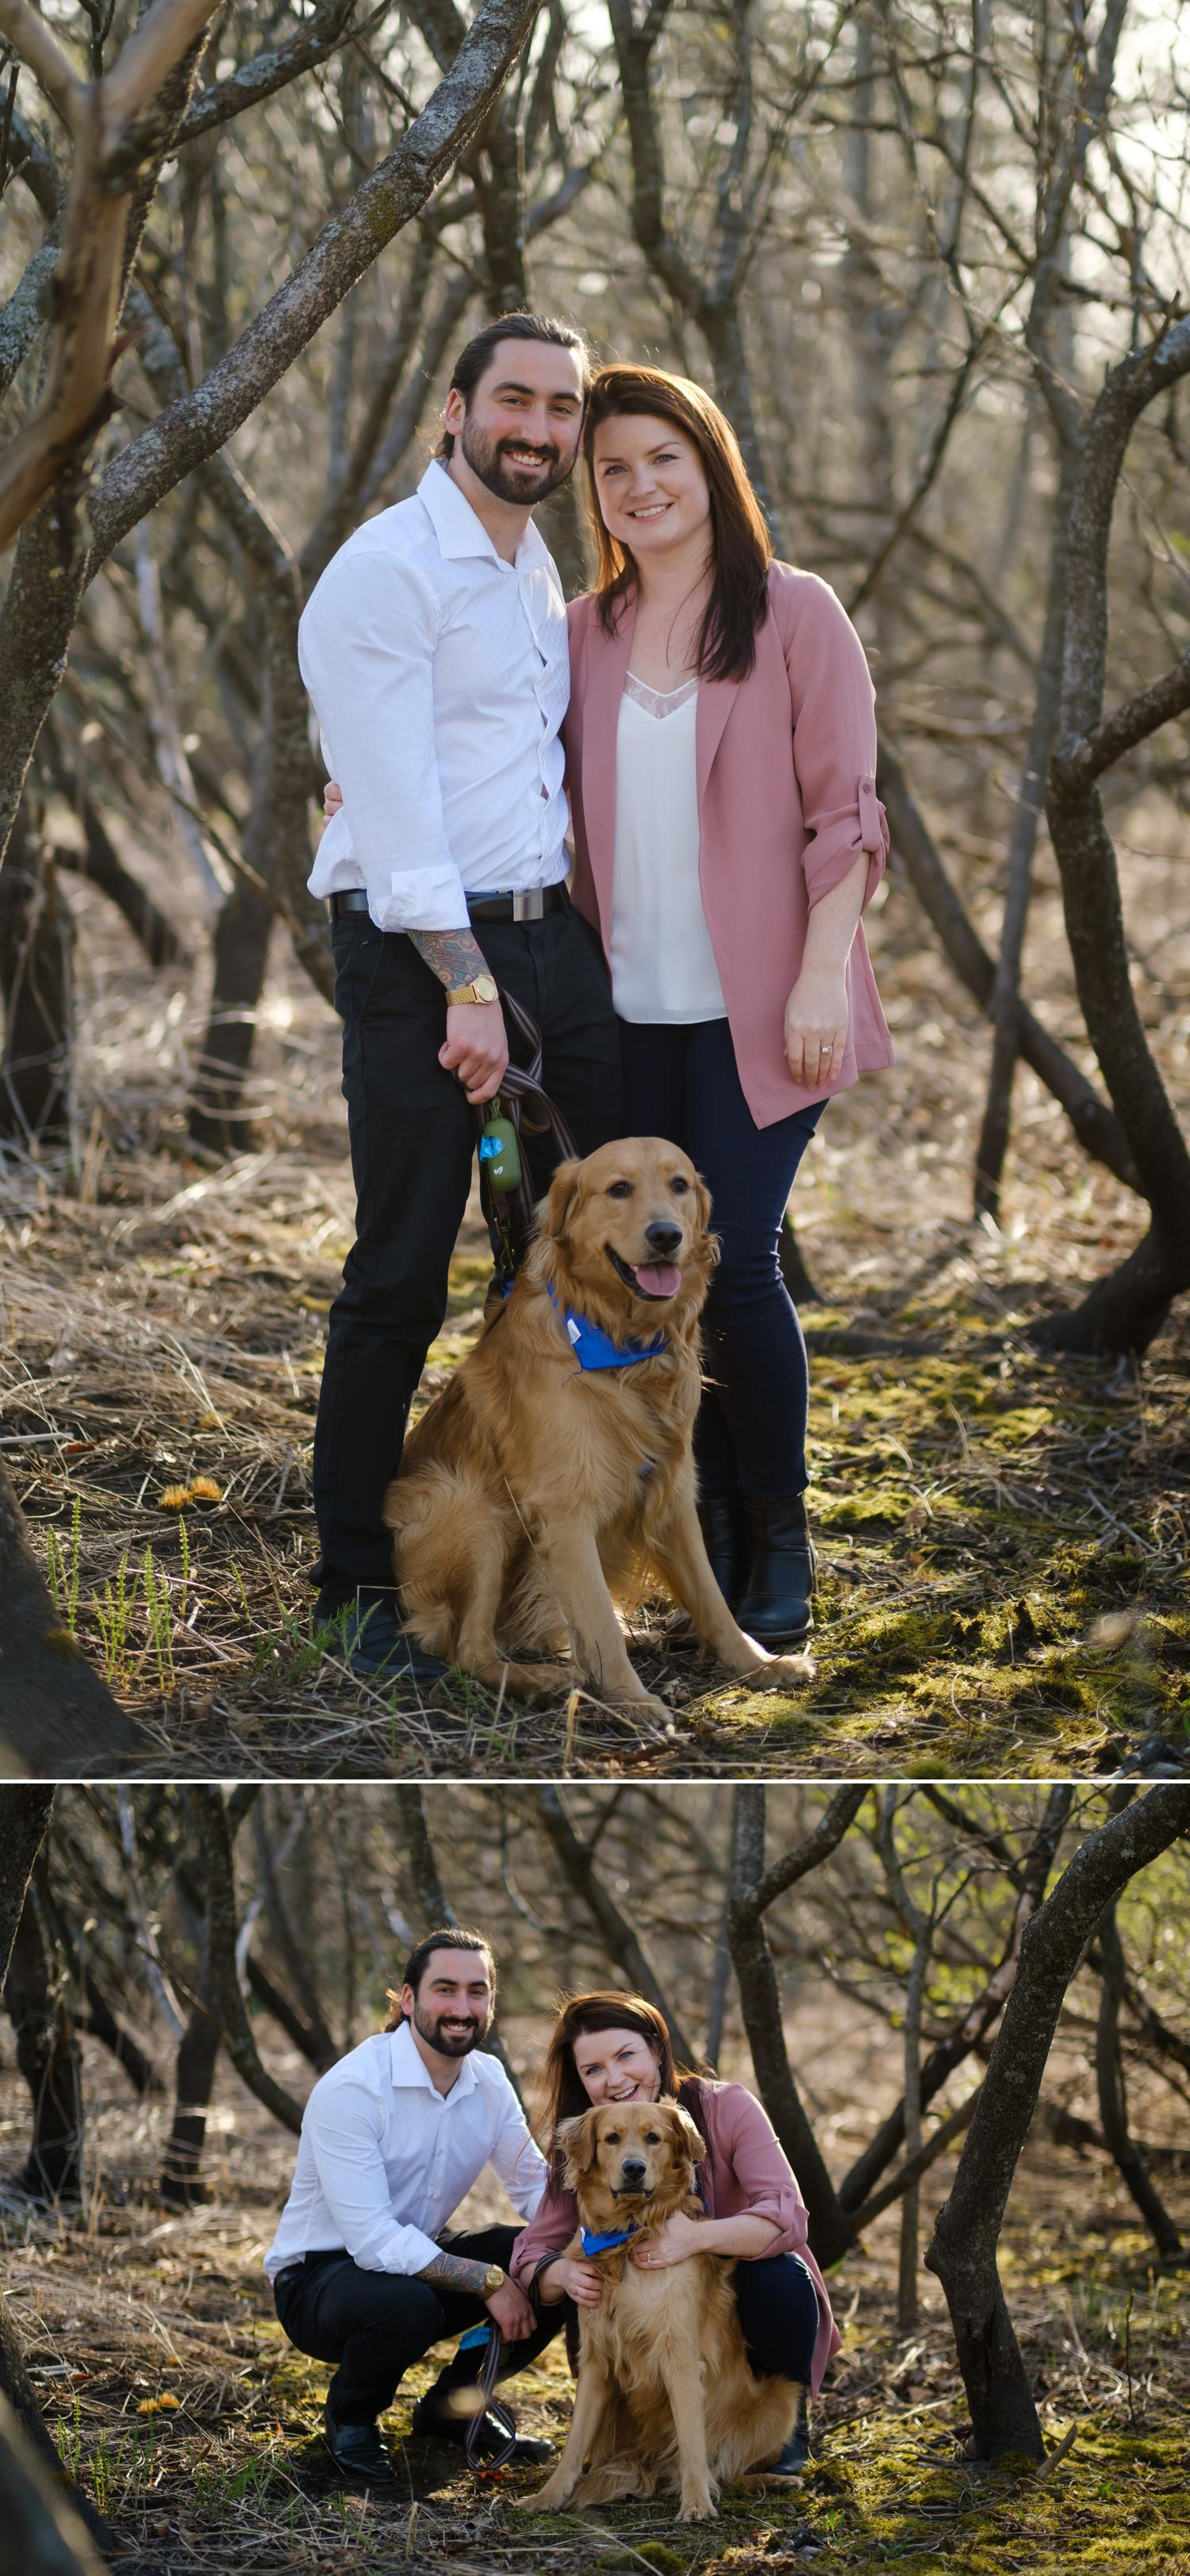 a portrait of an engaged couple and their pet dog